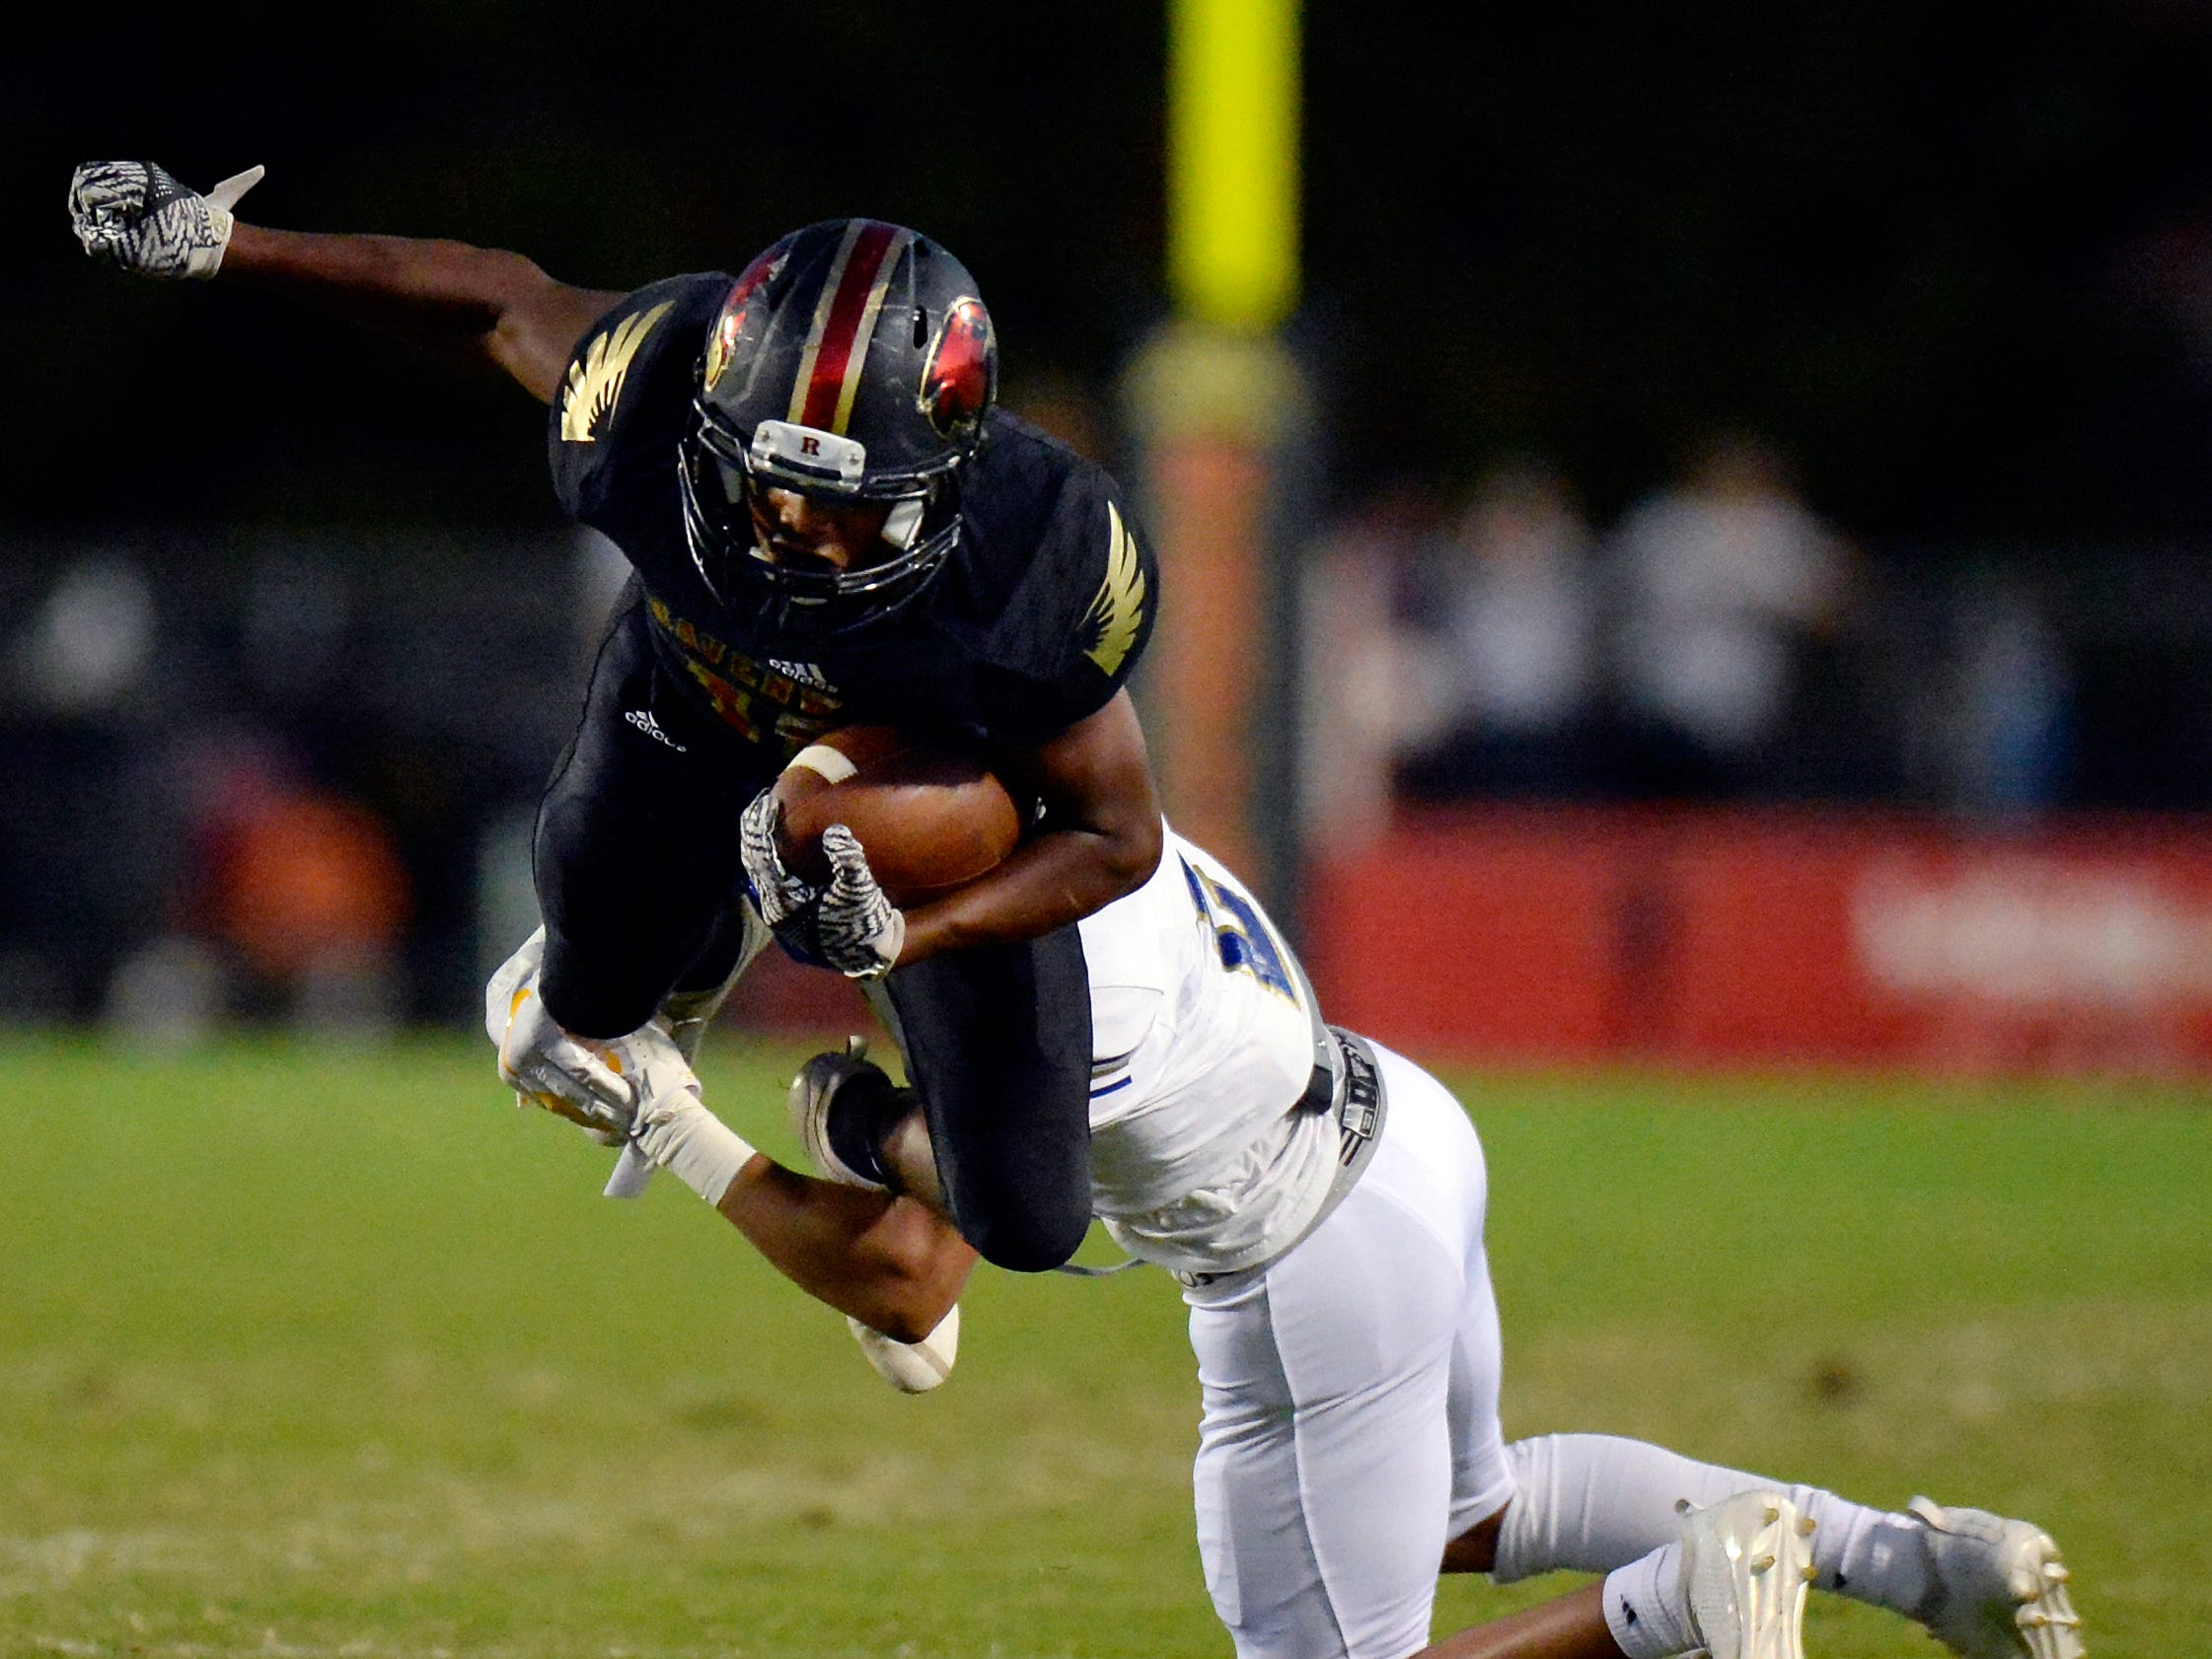 Ravenwood running back Tony Rice (10) is brought down by Brentwood cornerback  Davis White (2) during the first half of an high school football game Friday, September 14, 2018, in Brentwood, Tenn.